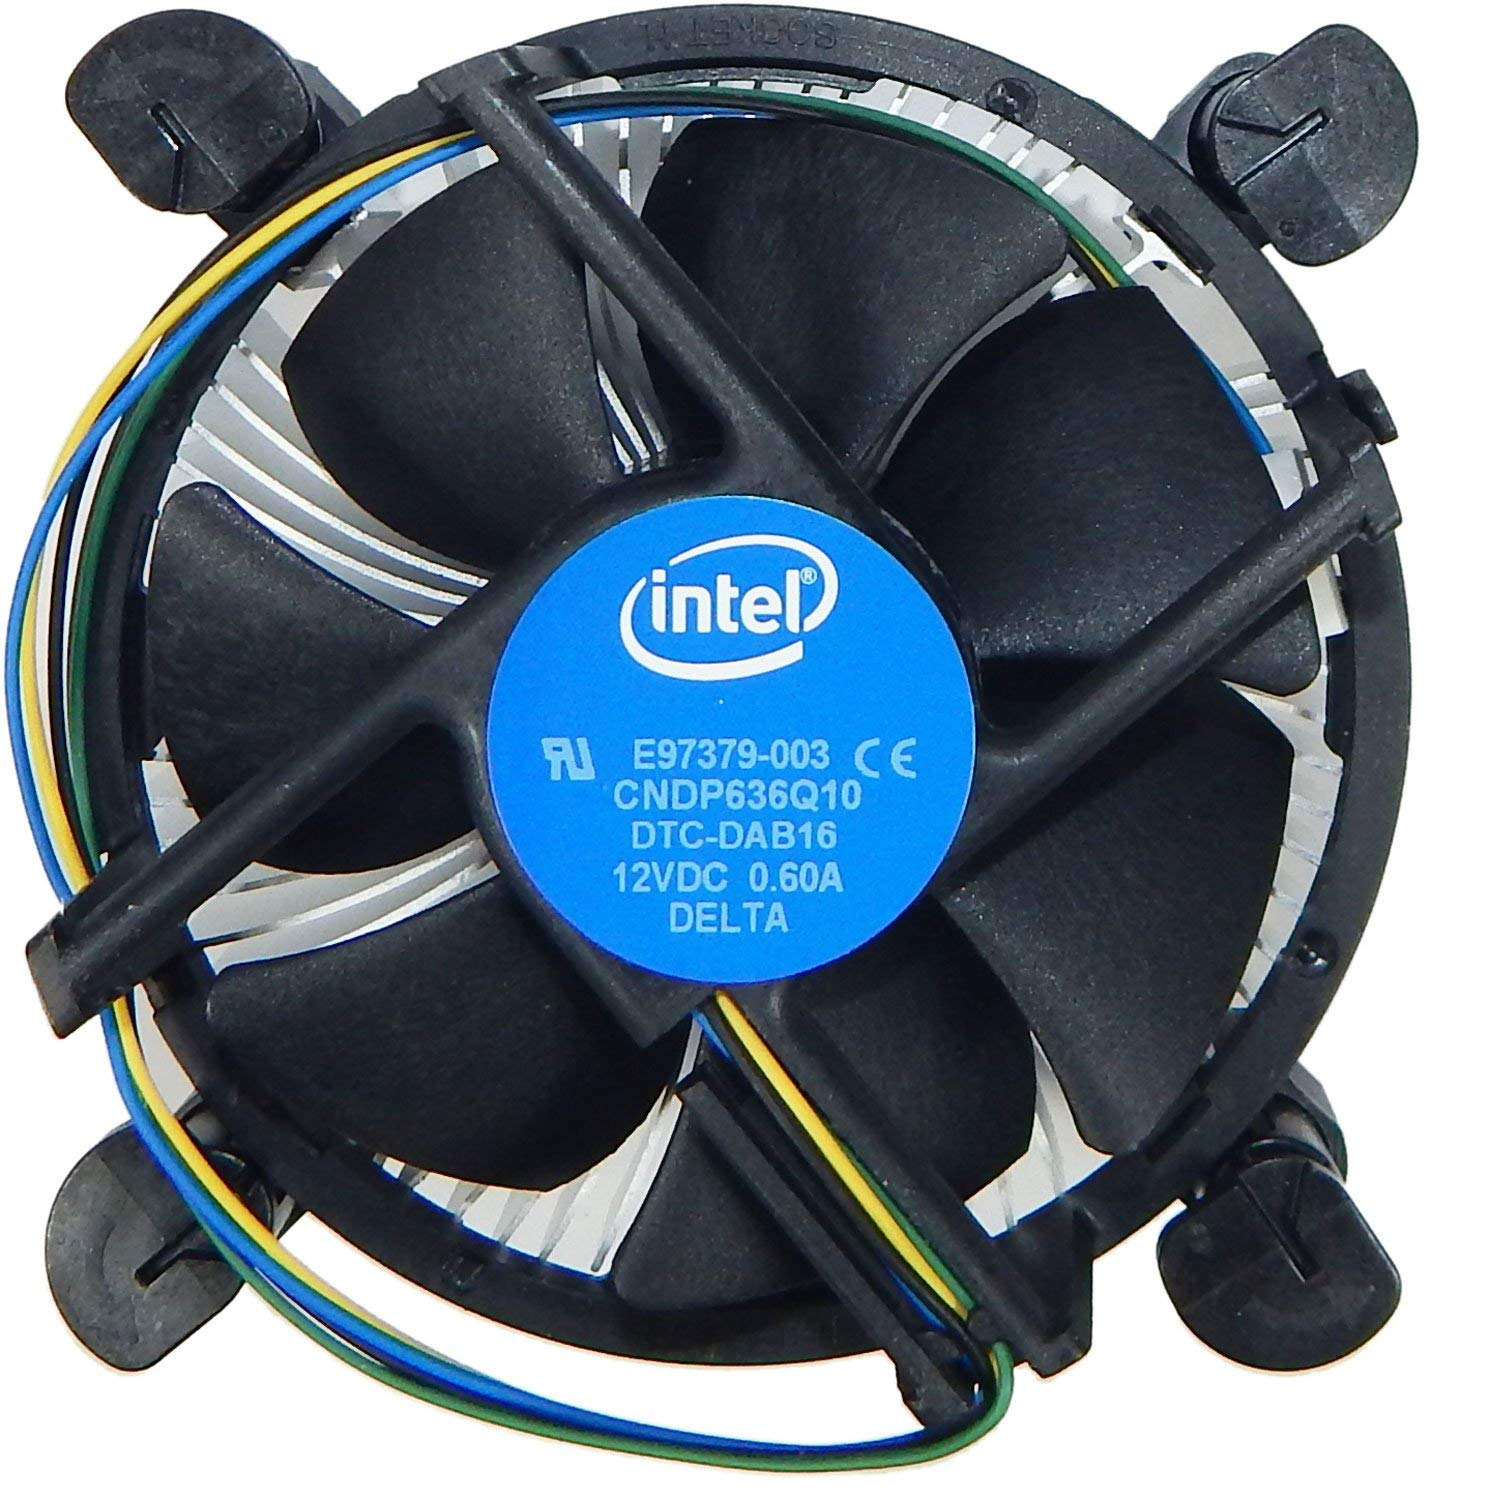 INTEL ORIGINAL COOLER 115X FOR I3/I5/I7